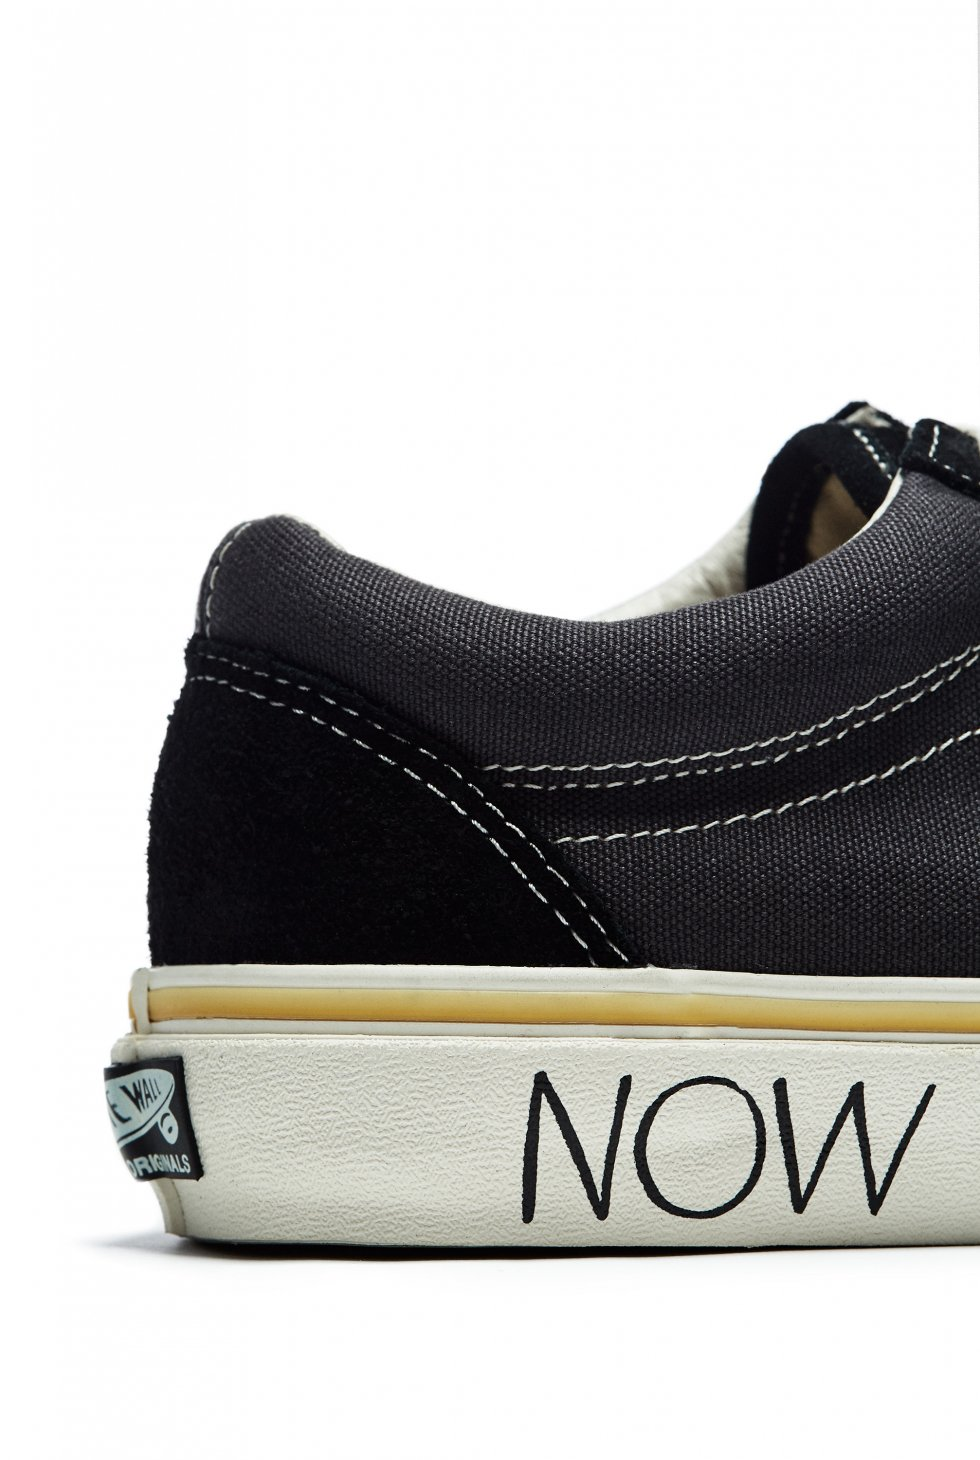 Vault by Vans x Wood Wood OG Old Skool LX